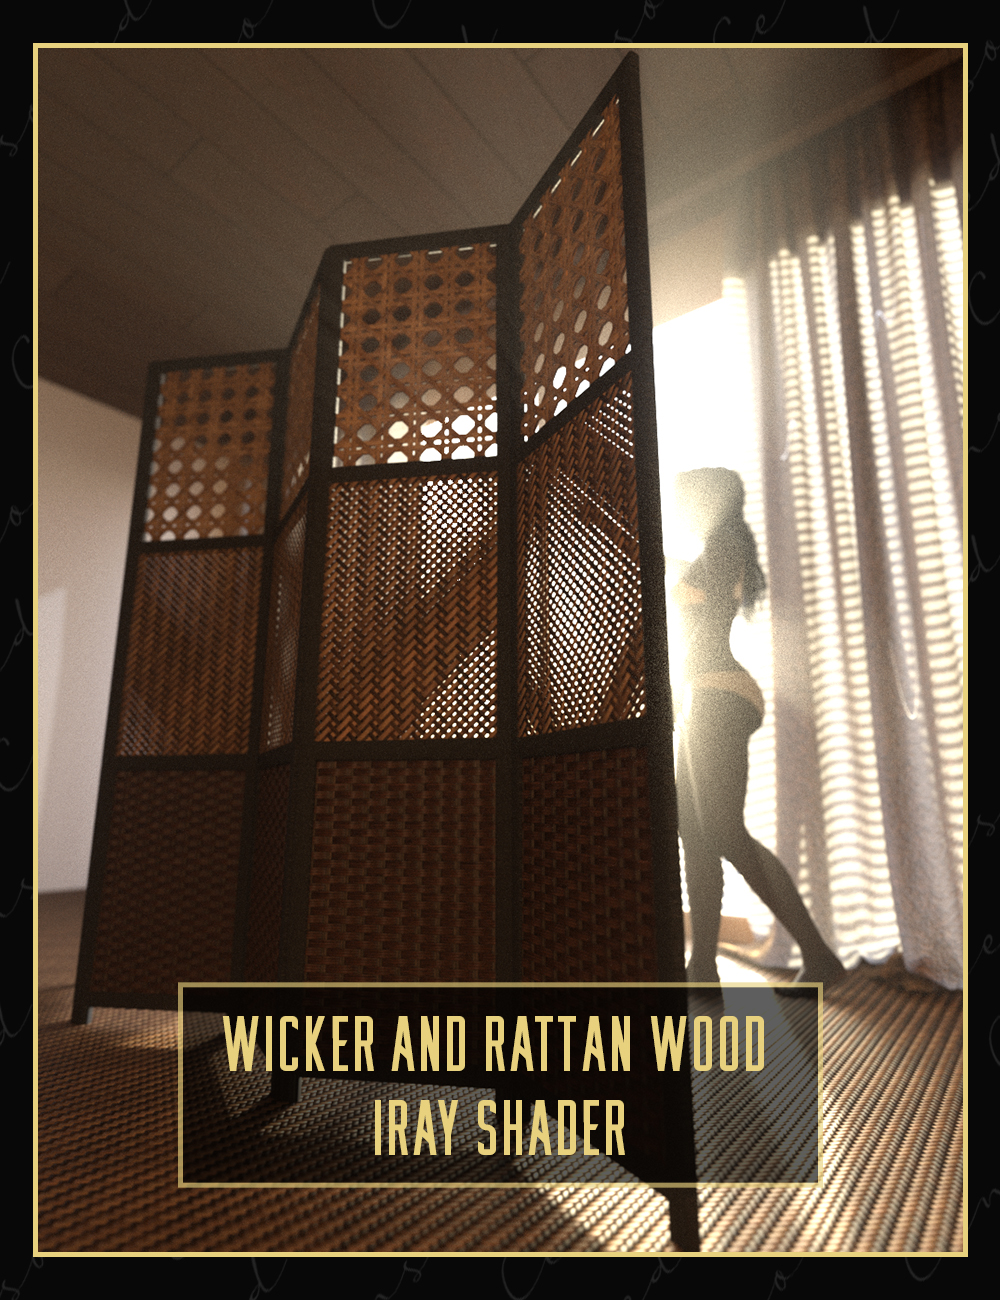 Wicker and Rattan Wood Iray Shader by: Censored, 3D Models by Daz 3D